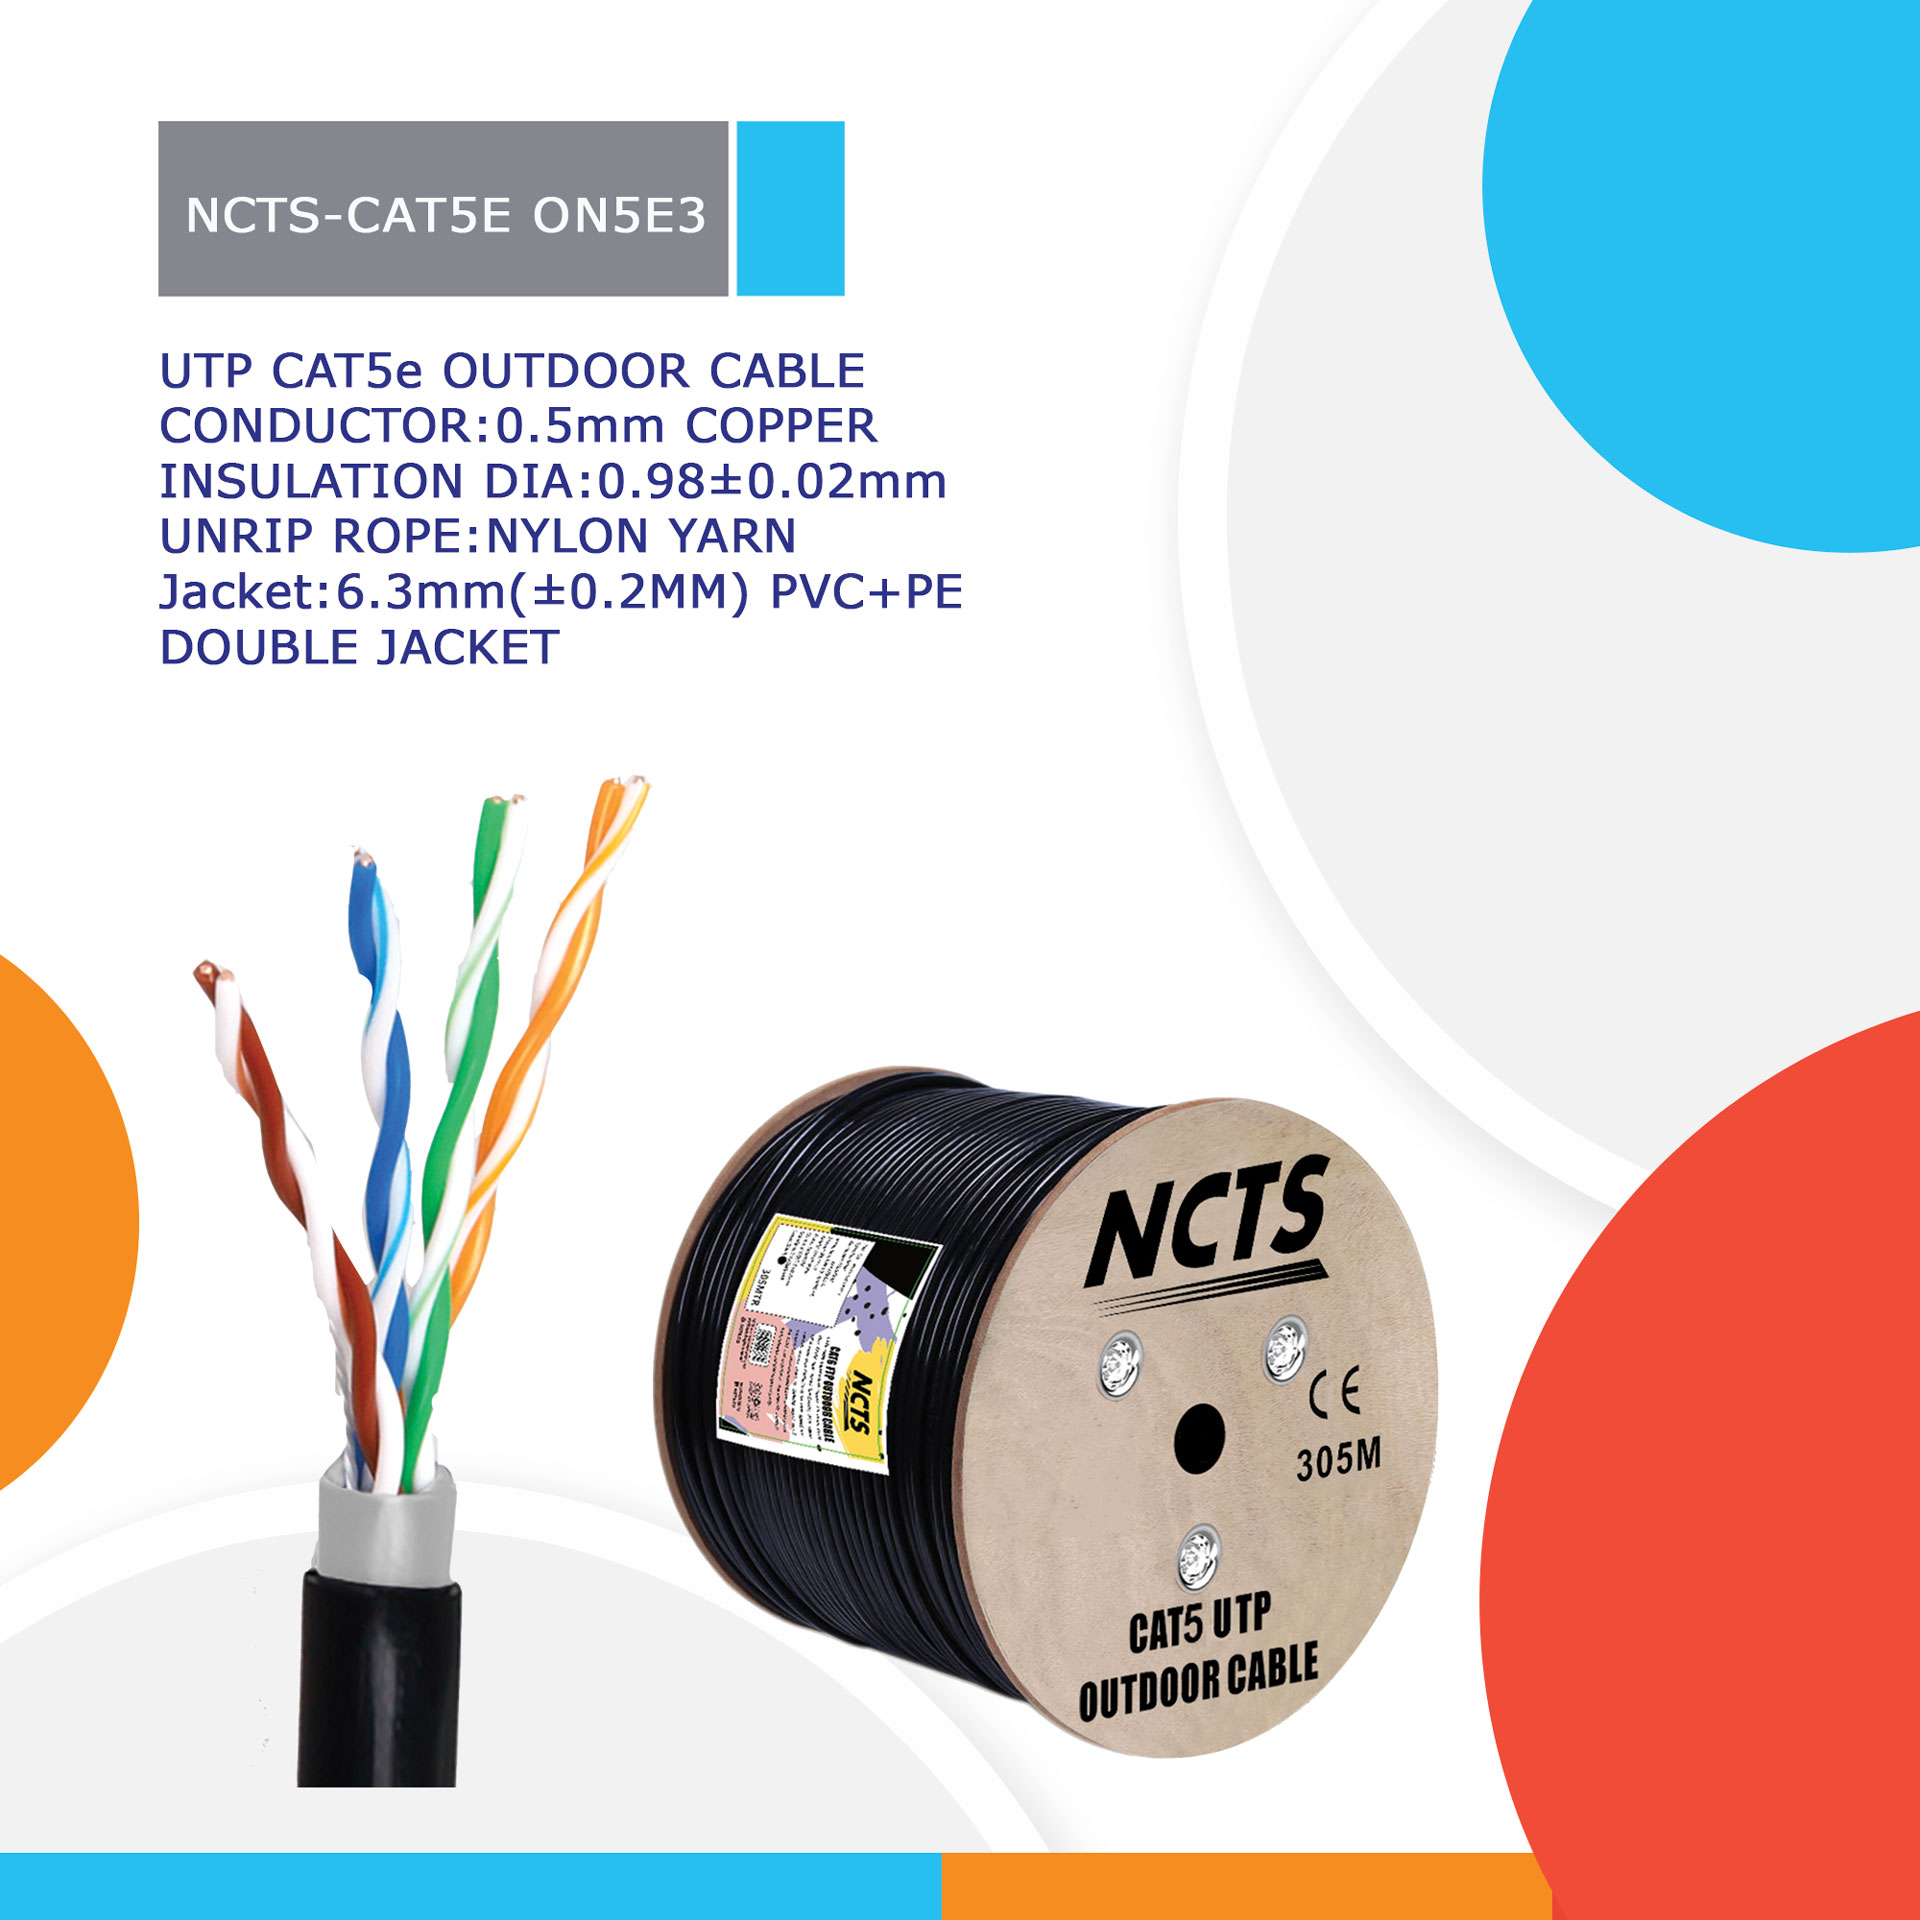 NCTS-CAT5E ON5E3